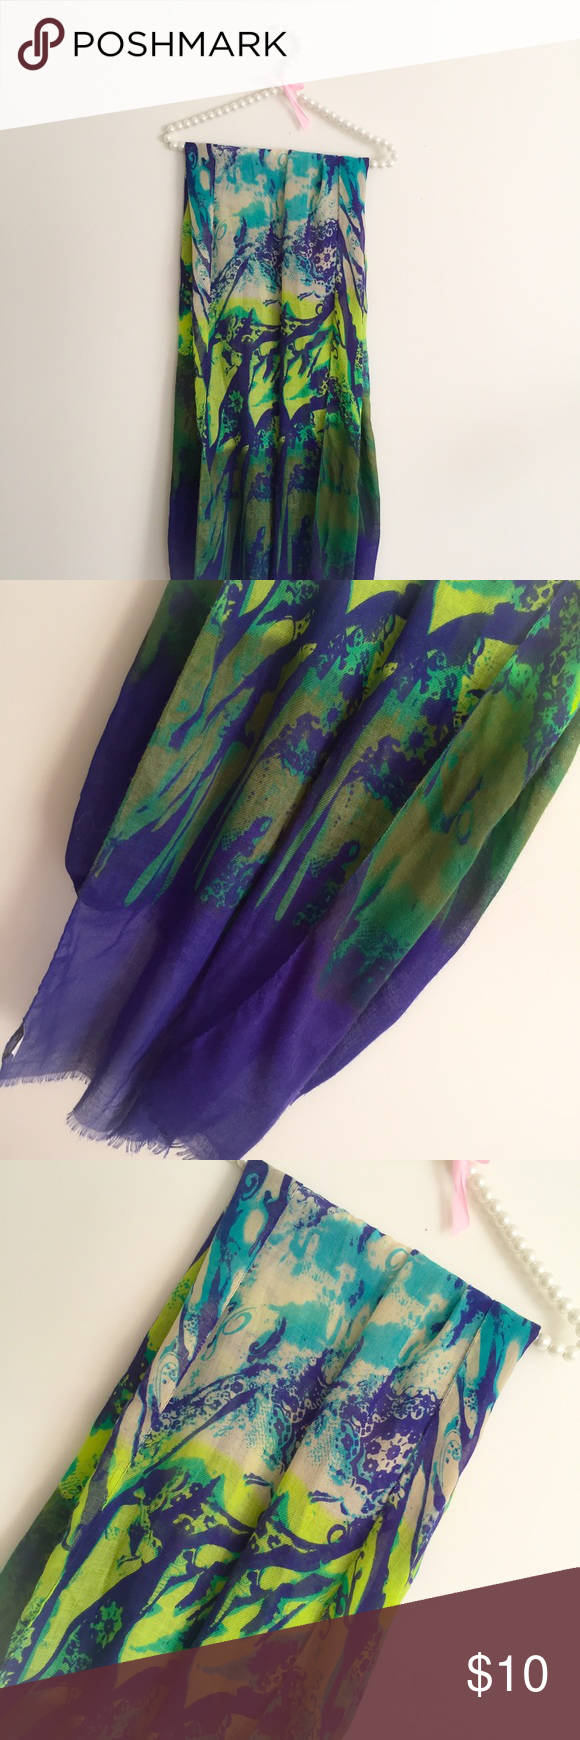 Abstract watercolor scarf🌀💙💫 Abstract watercolor scarf from Apt. 9. One of my favorites but I have so many scarves so I'm retiring some. In beautiful condition, material is polyester. So bright and vivid, I received a lot of compliments! Heady afff. Reminds me of Free People. ✖️NO TRADES✖️ ✖️No holds✖️ ✖️No lowest?/lowballing✖️ 💲10% discount on bundles Apt. 9 Accessories Scarves & Wraps